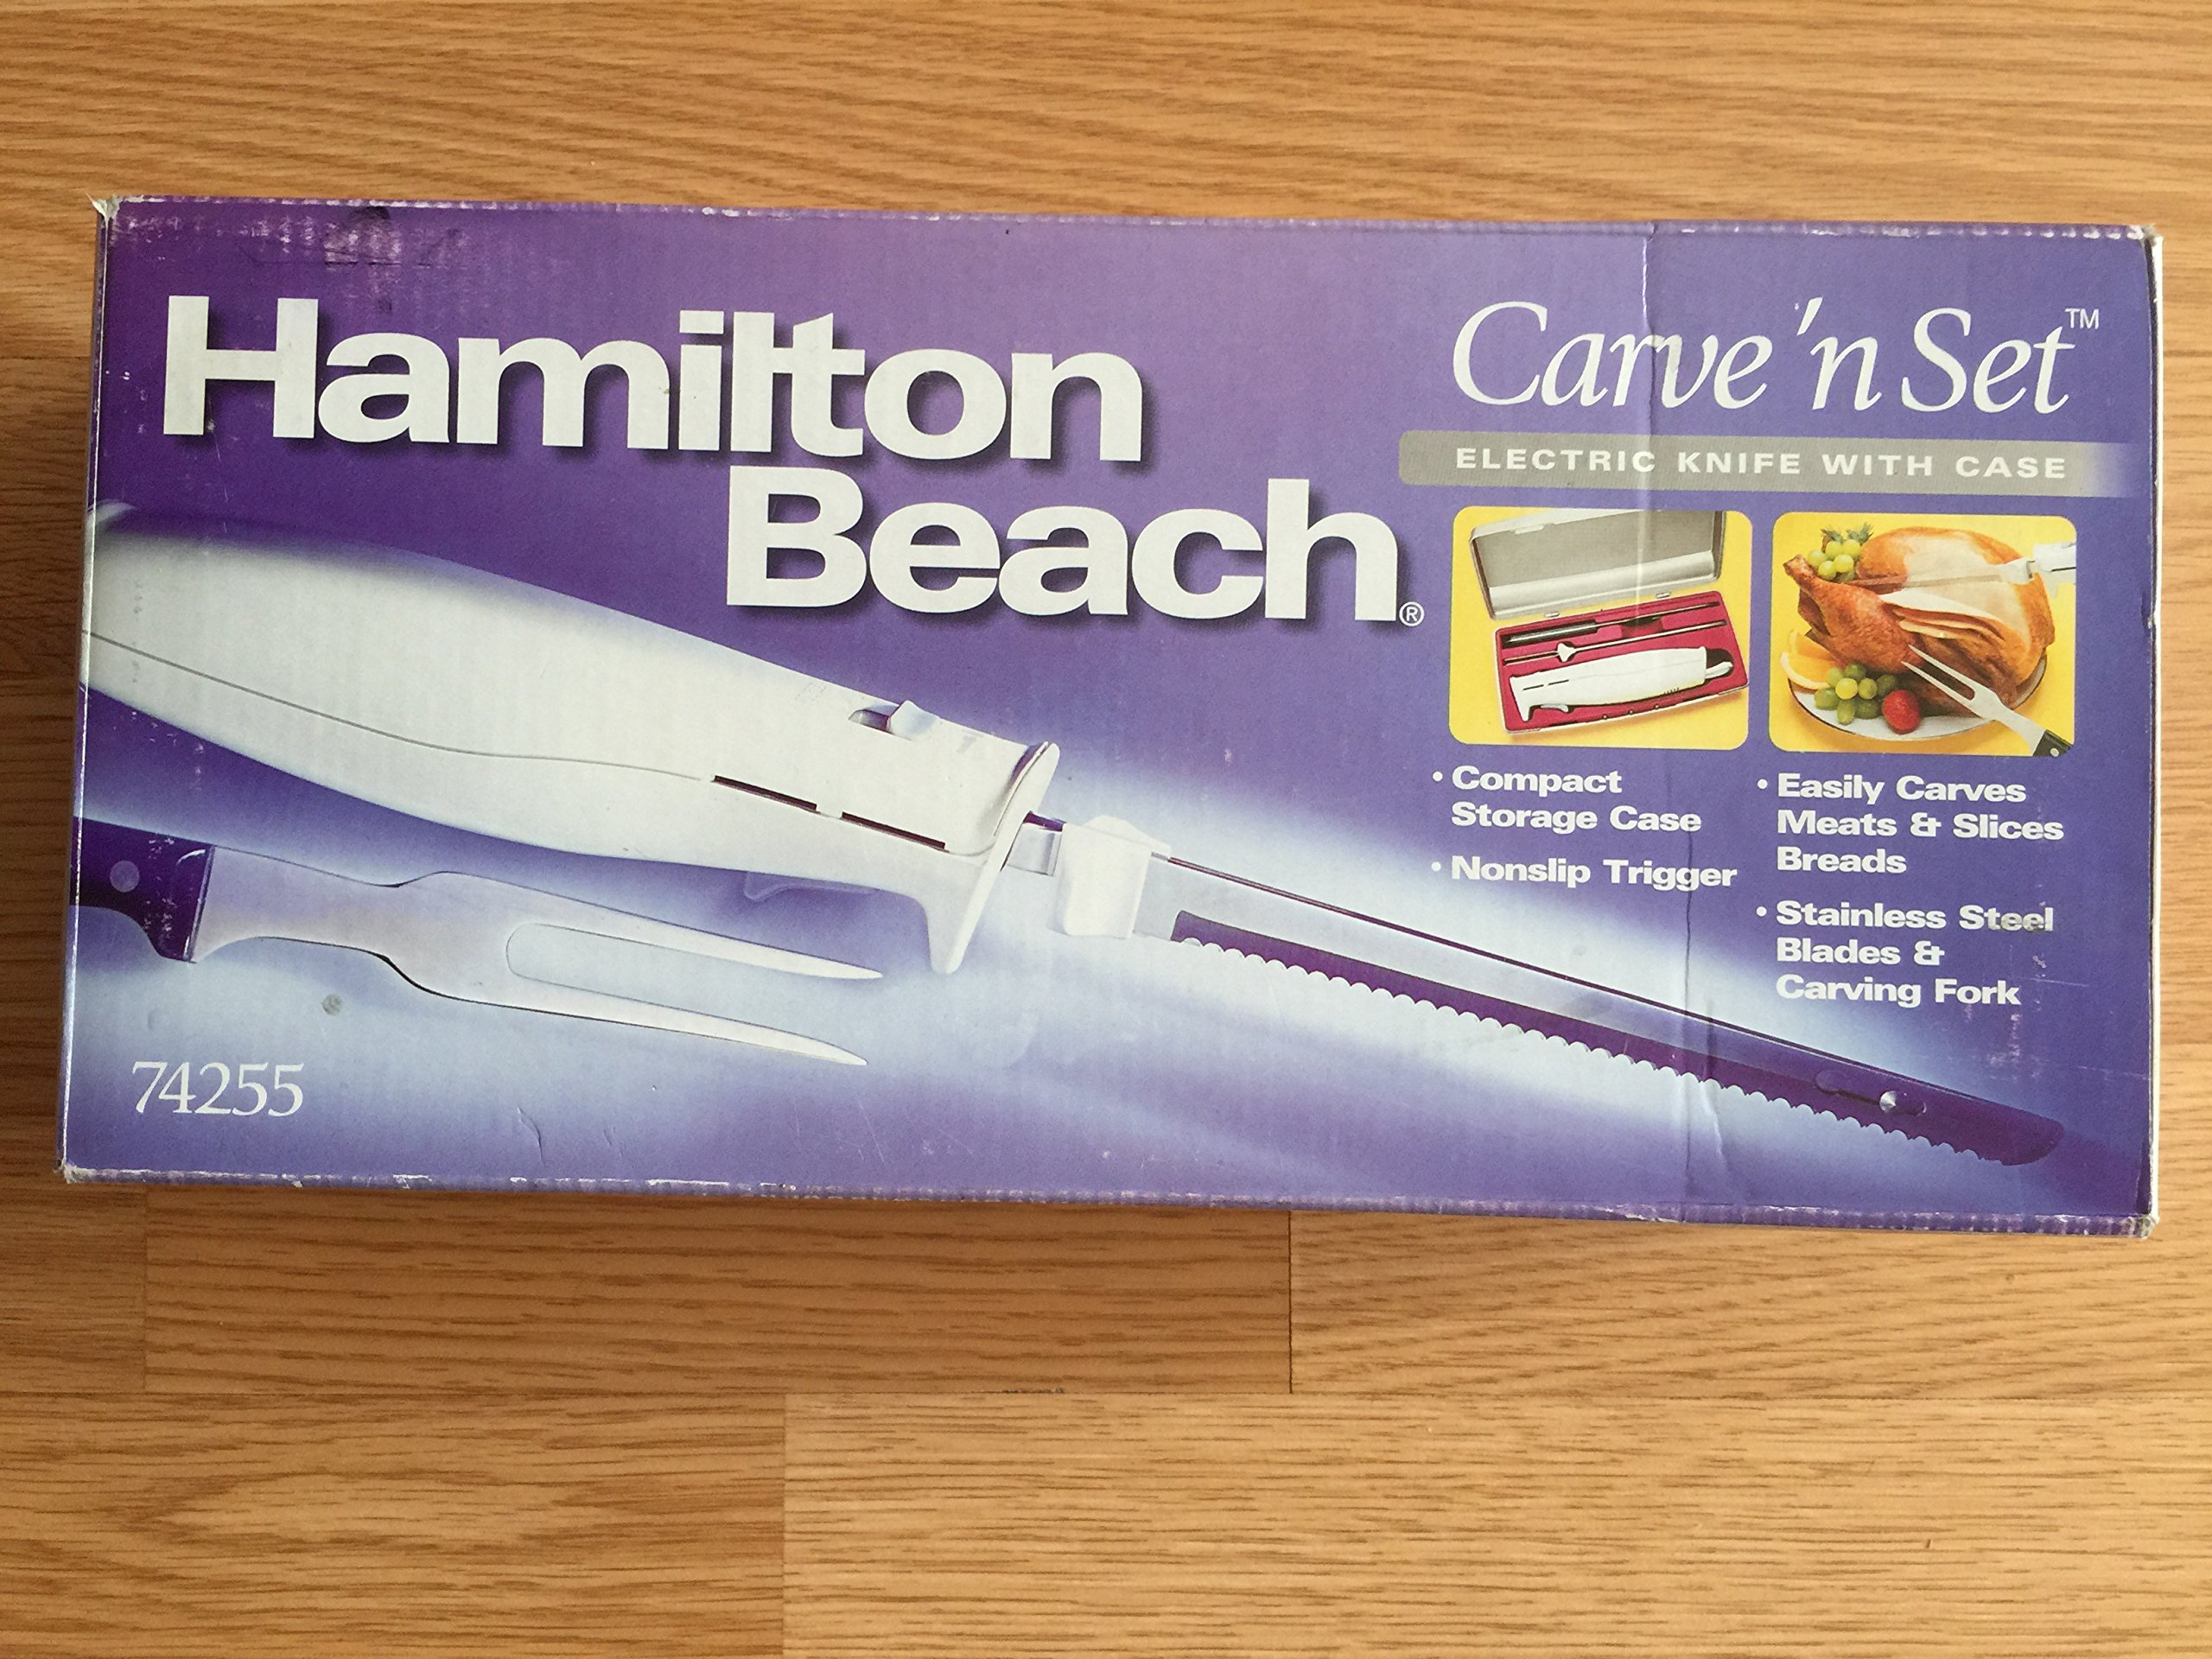 Hamilton Beach Carve 'n Set Electric Knife with case 74255